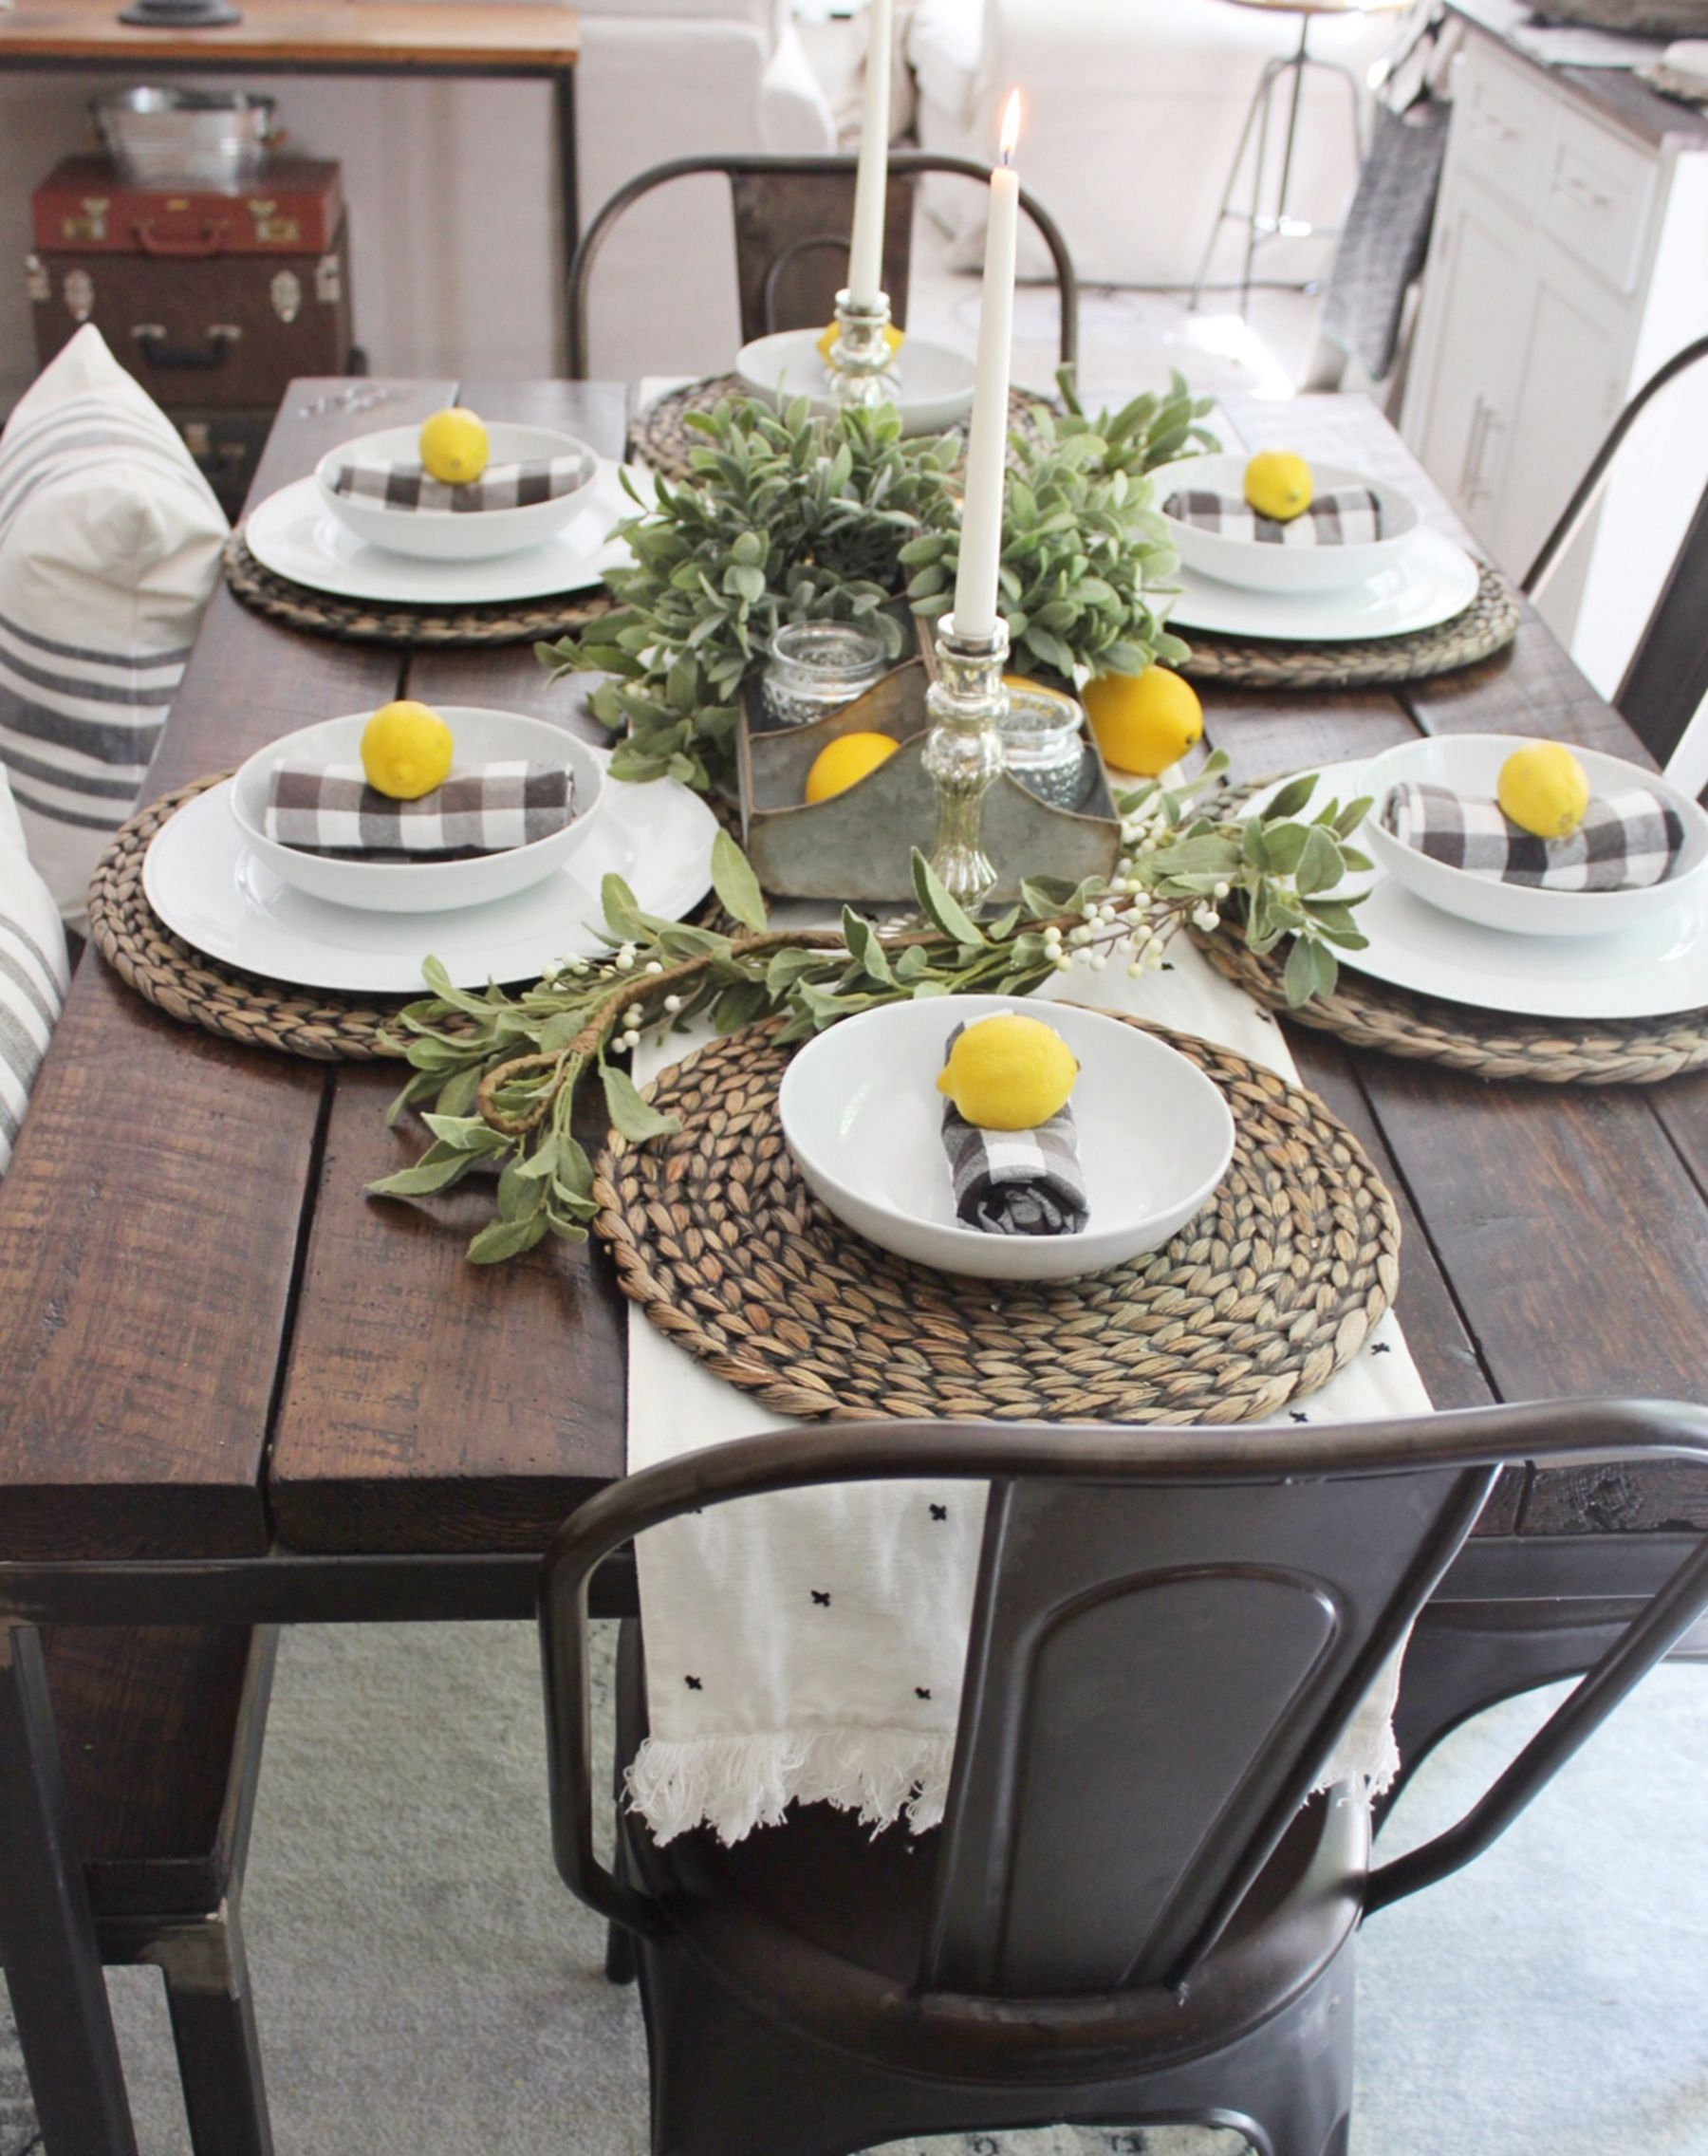 Pin By Taylor Bayles On Table Dining Room Table Centerpieces Dining Room Table Decor Farmhouse Dining Rooms Decor